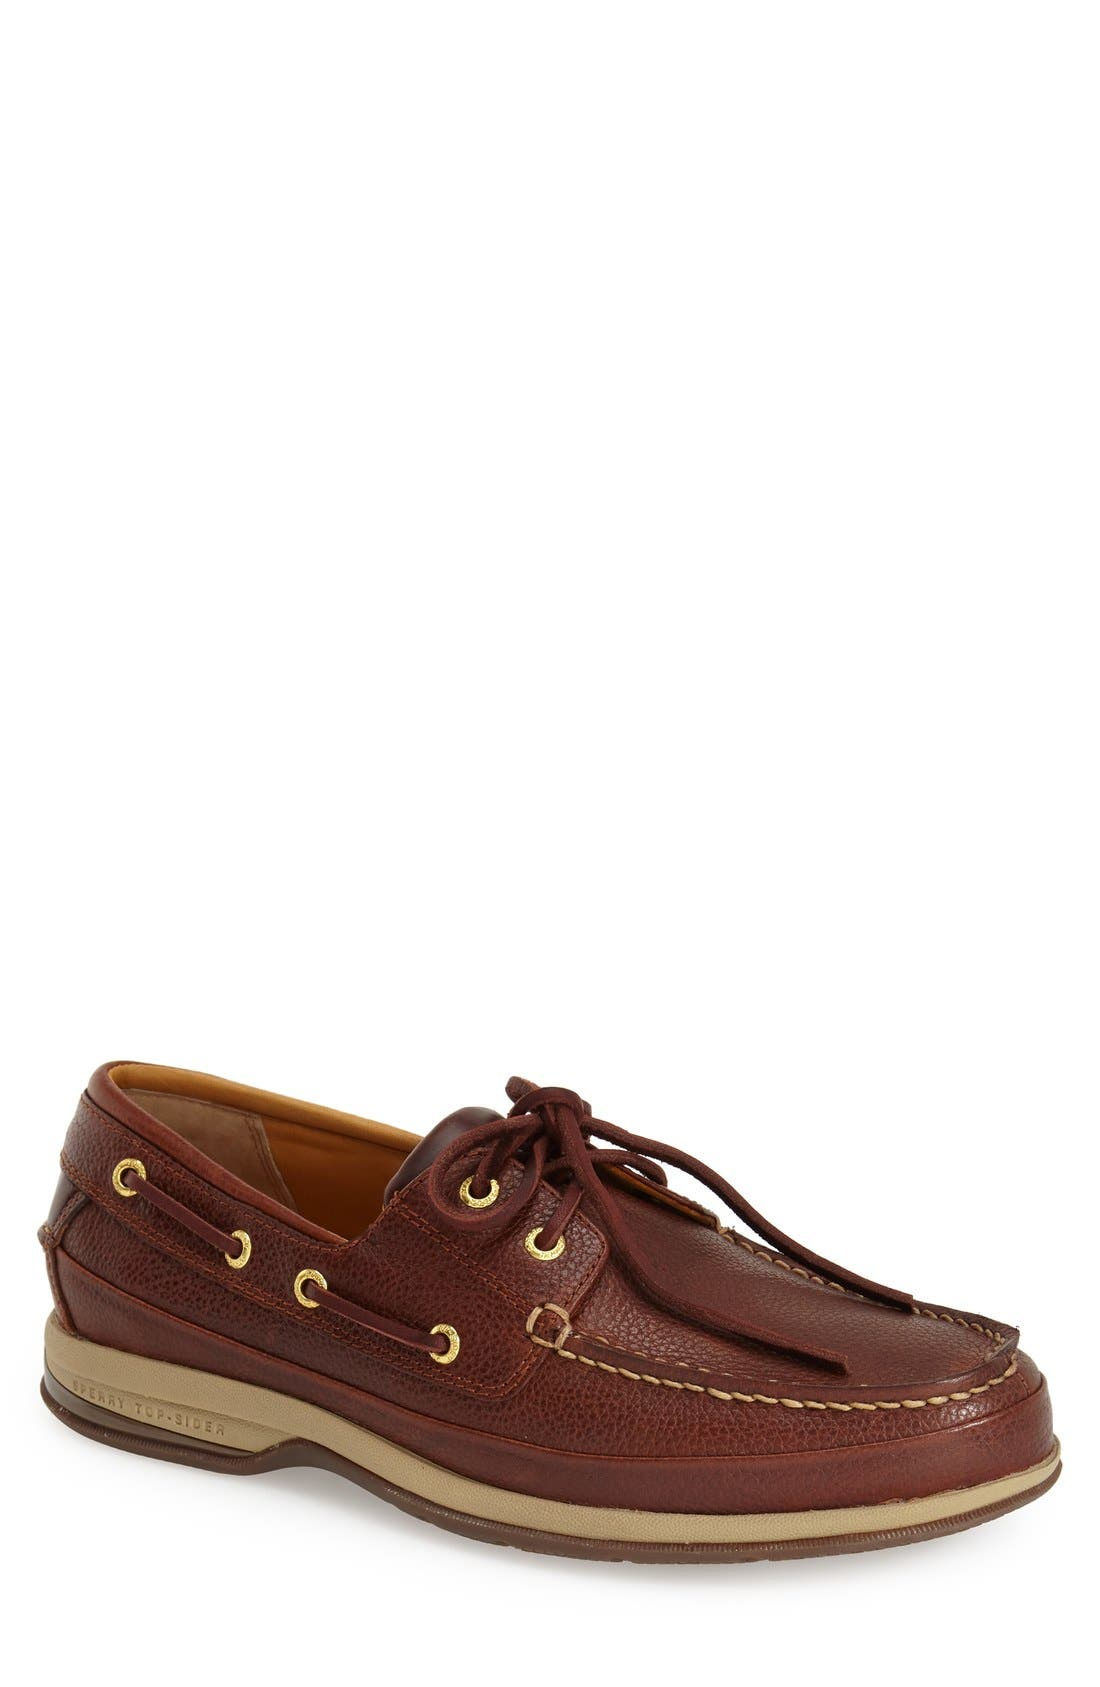 SPERRY,                             'Gold Cup 2-Eye ASV' Boat Shoe,                             Main thumbnail 1, color,                             200